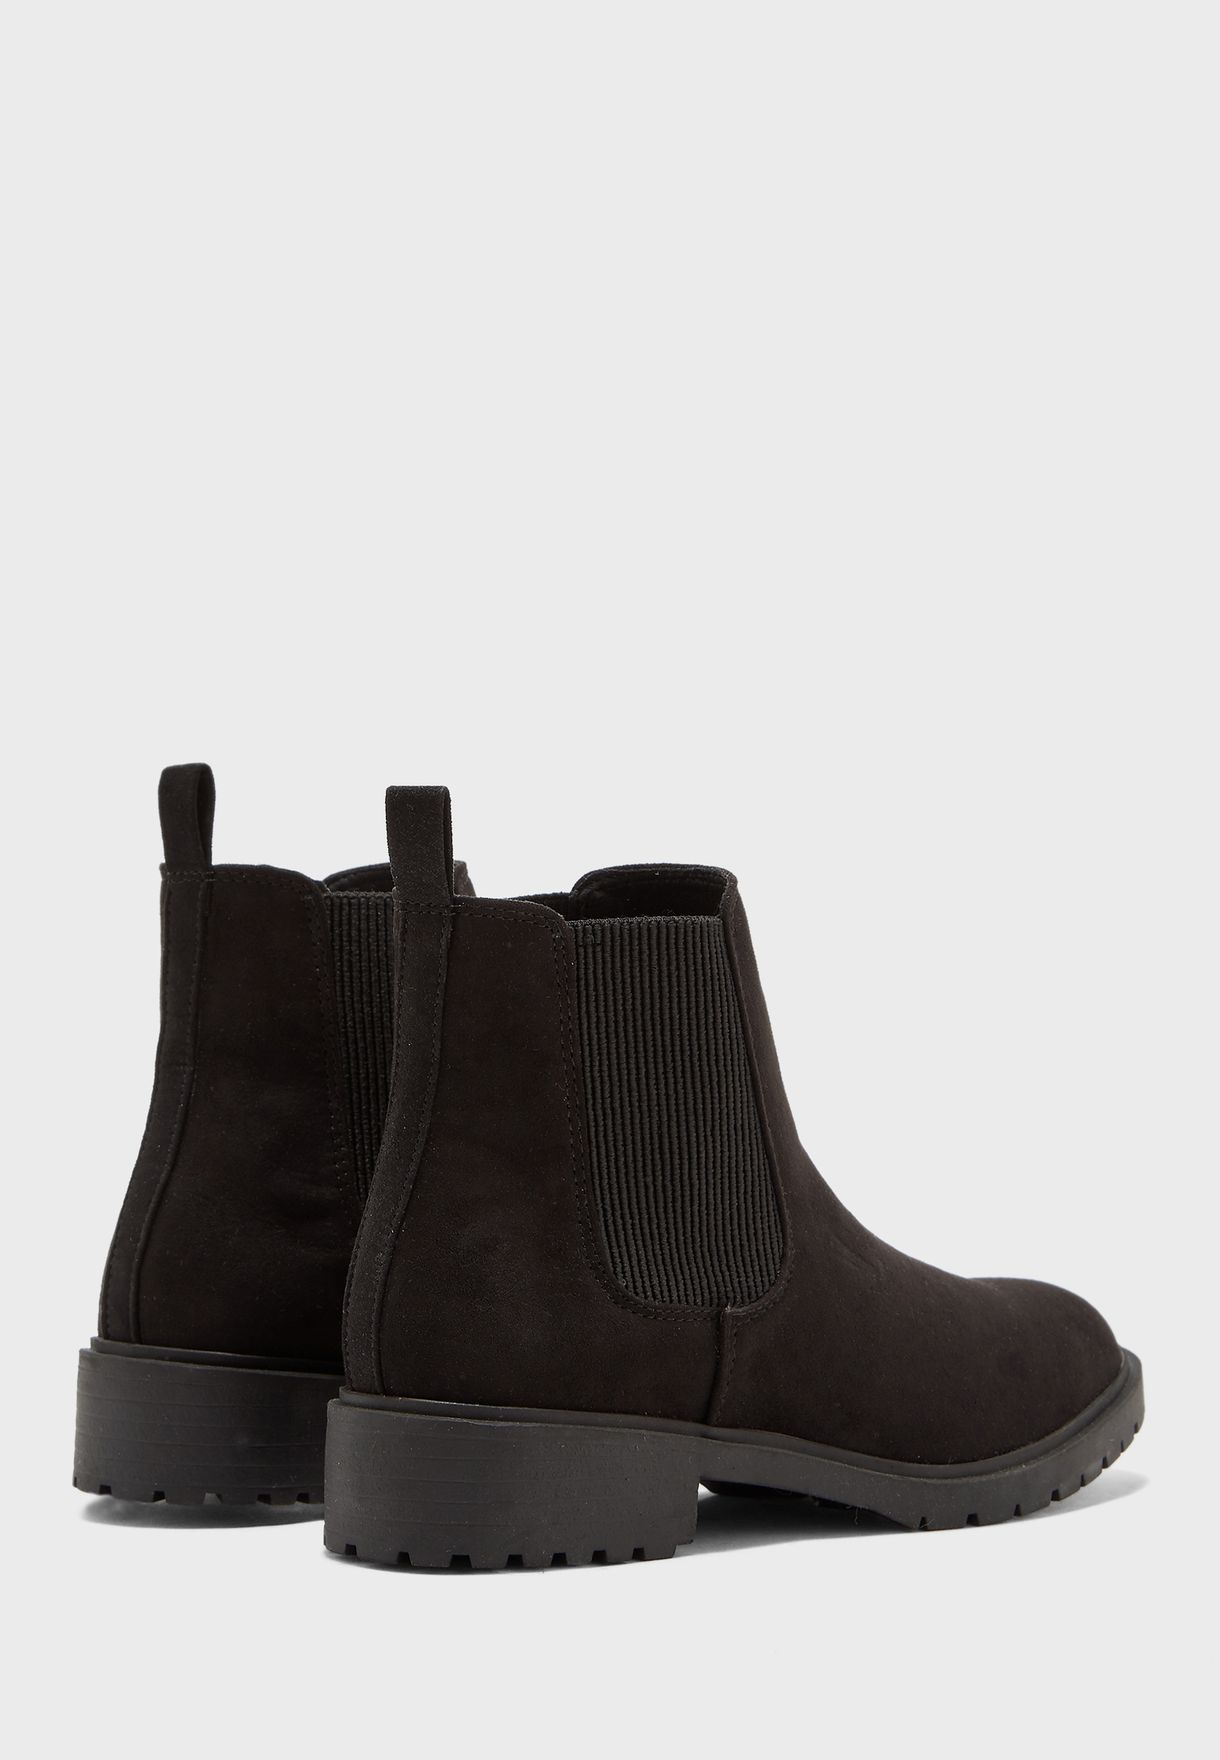 Daily 2 Ankle Boot